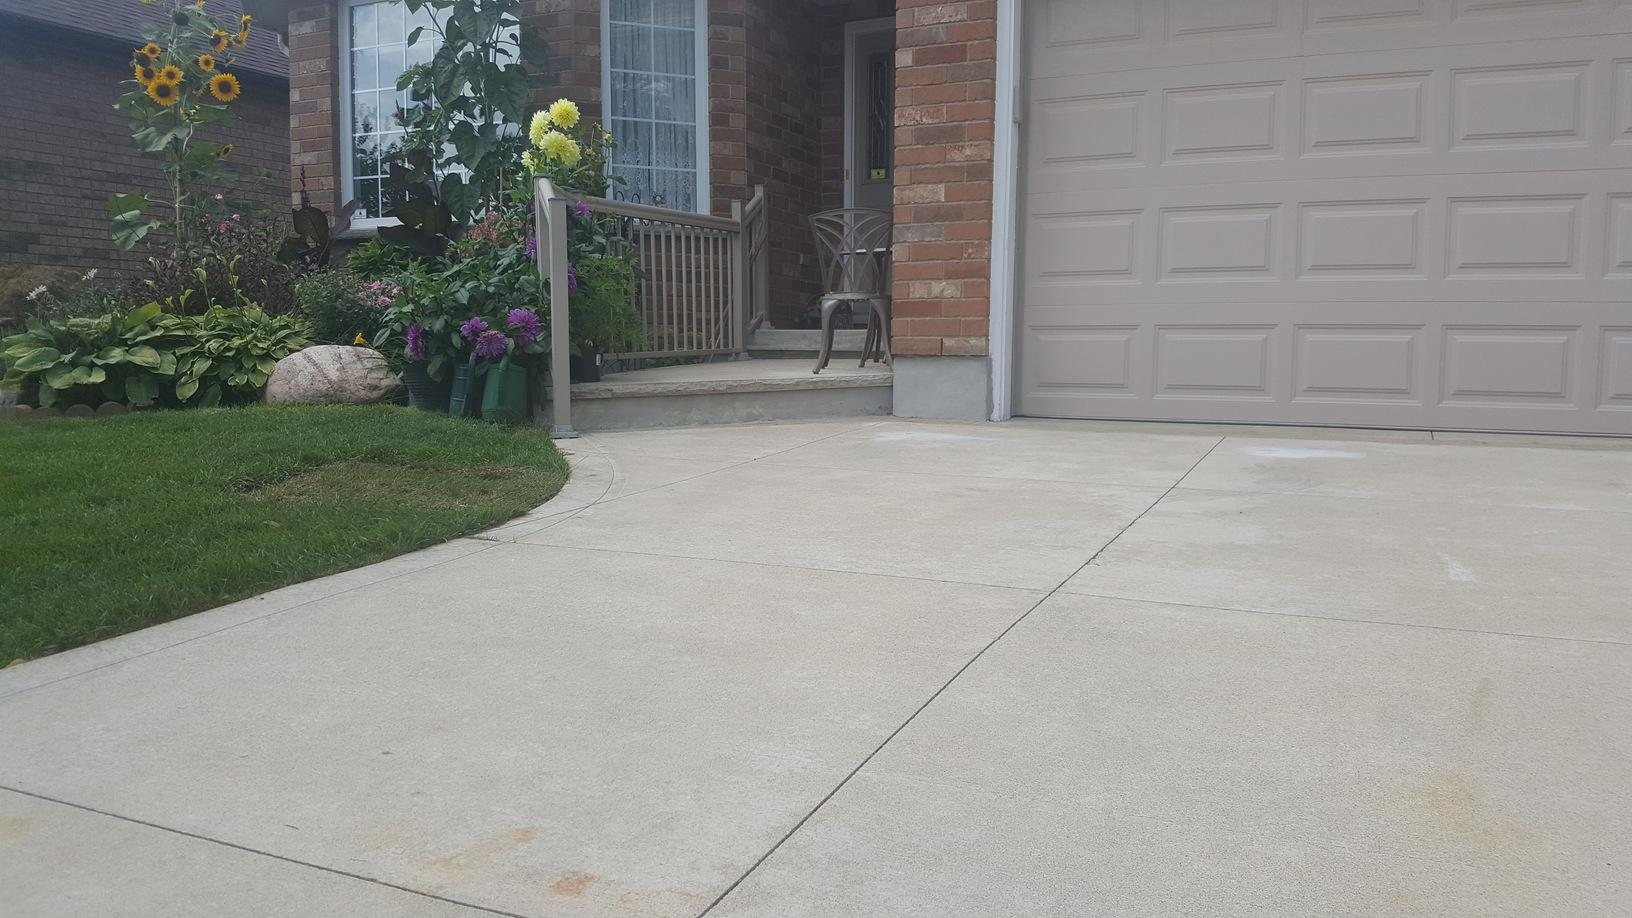 Raise and Level example in Waterloo, Ontario - After Photo